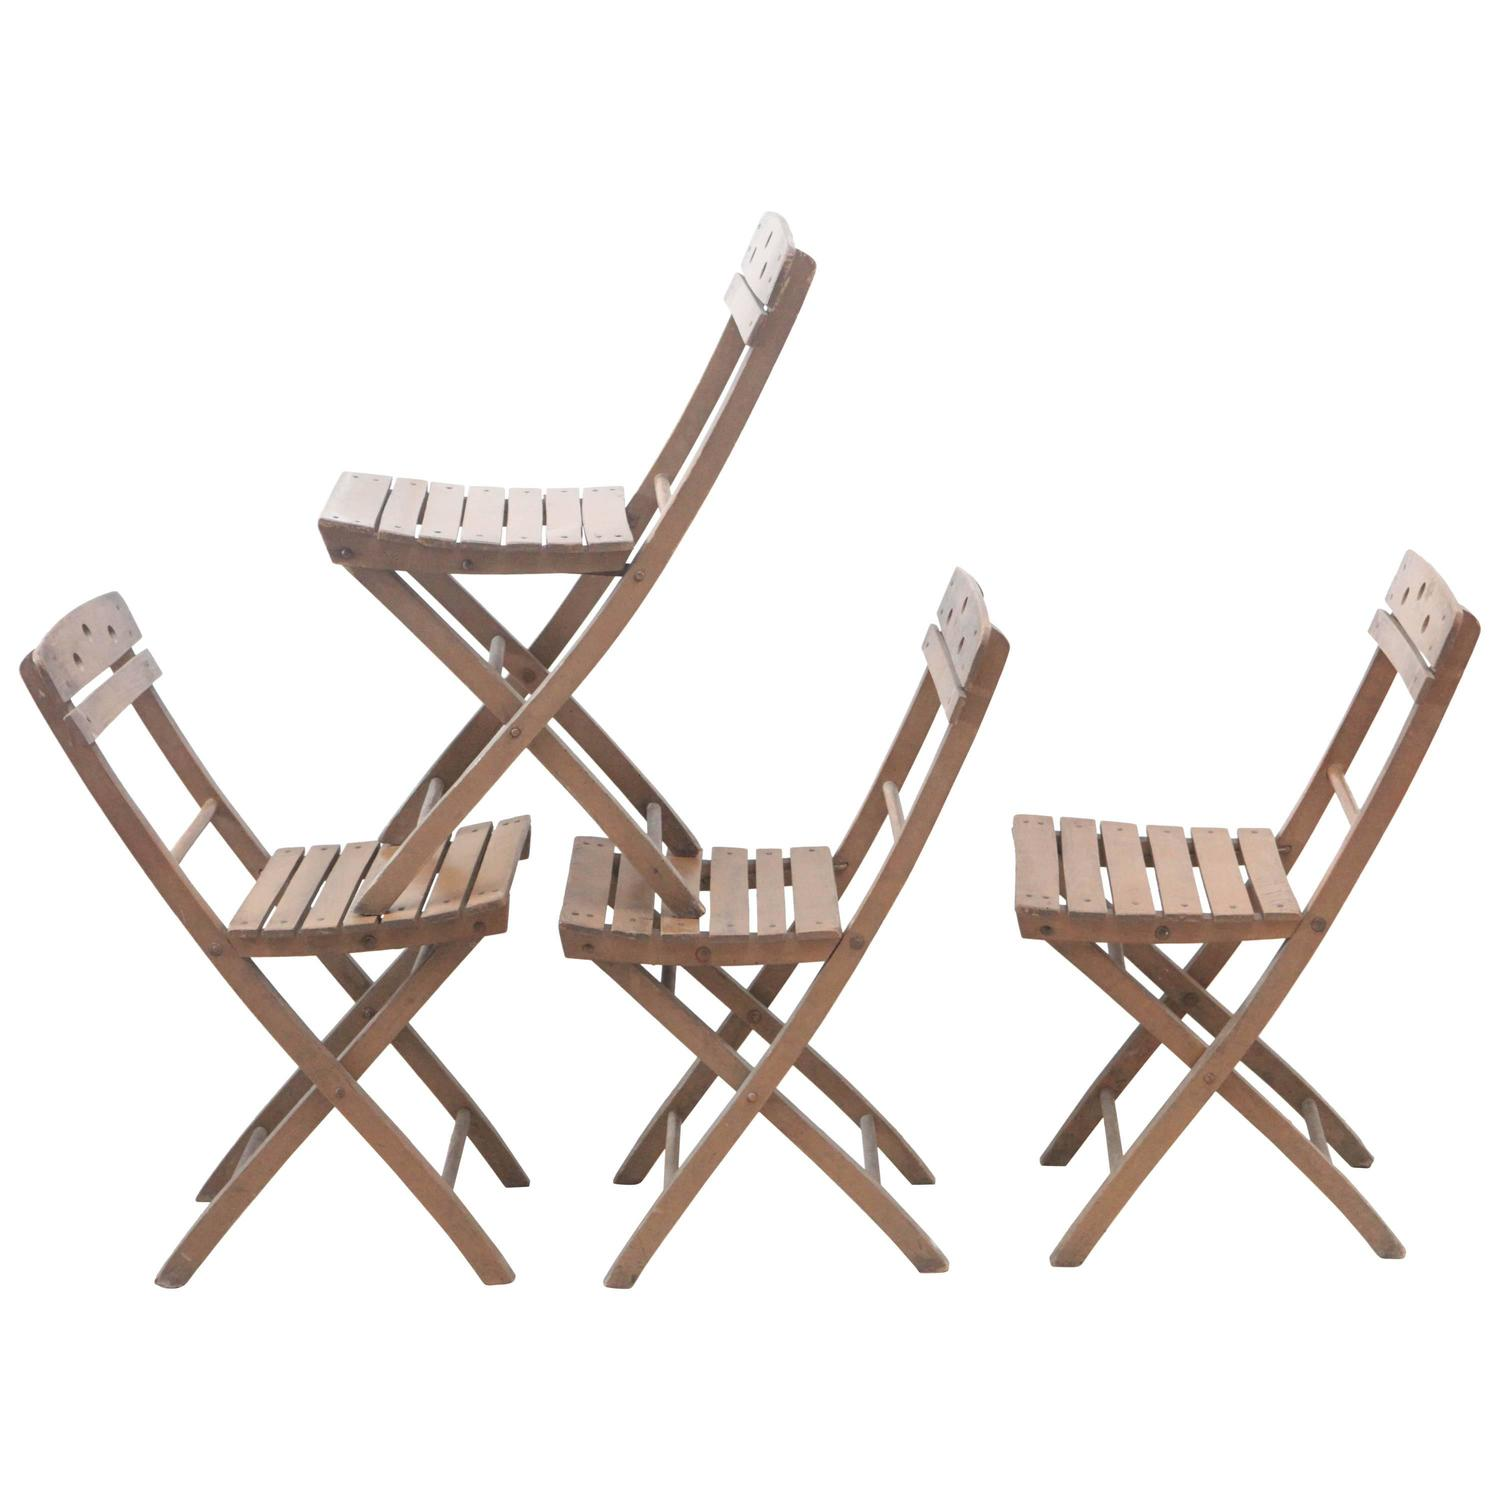 Italian Bistro Folding Chairs 16 Available at 1stdibs